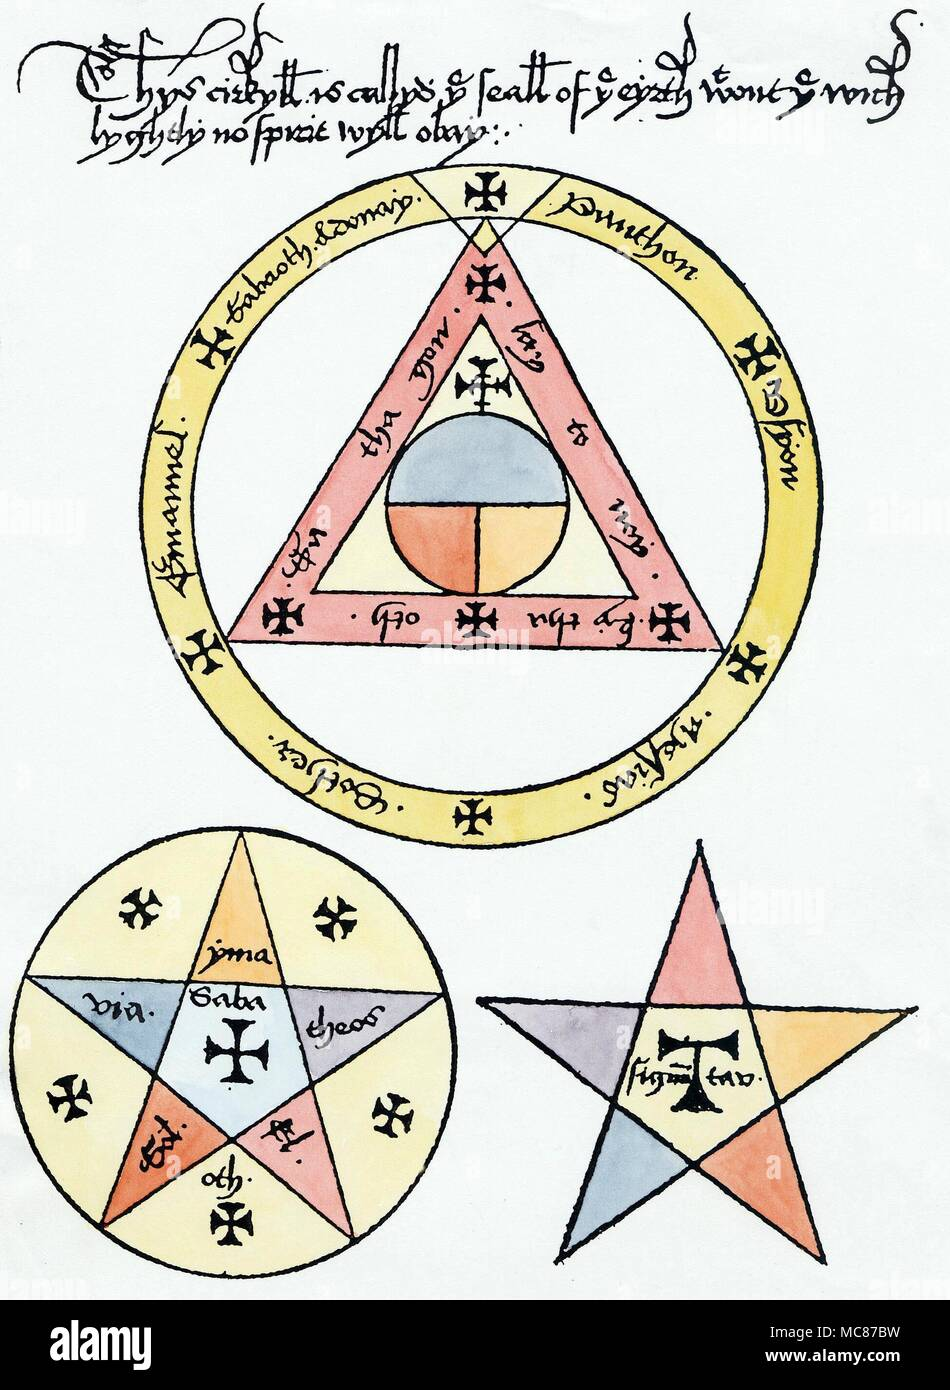 SYMBOLS - PENTAGRAM - PENTAGON  Three magical symbols from a 14th century manuscript grimoire, designed to reveal a design which no spirit (when conjured, or otherwise) might penetrate, to reach the magician within.  [Top]  Within the encircled triangle is the symbol of the World, divided into three parts (the three 'continents' of  Europe, Africa and Asia, in the ancient world maps), with the Cross marking the fabled place of the Garden of Eden, to the East.  The centre of this world symbol is supposed to be Jerusalem, so this entire figure is centred on this city.  [Below left]  The encircle Stock Photo